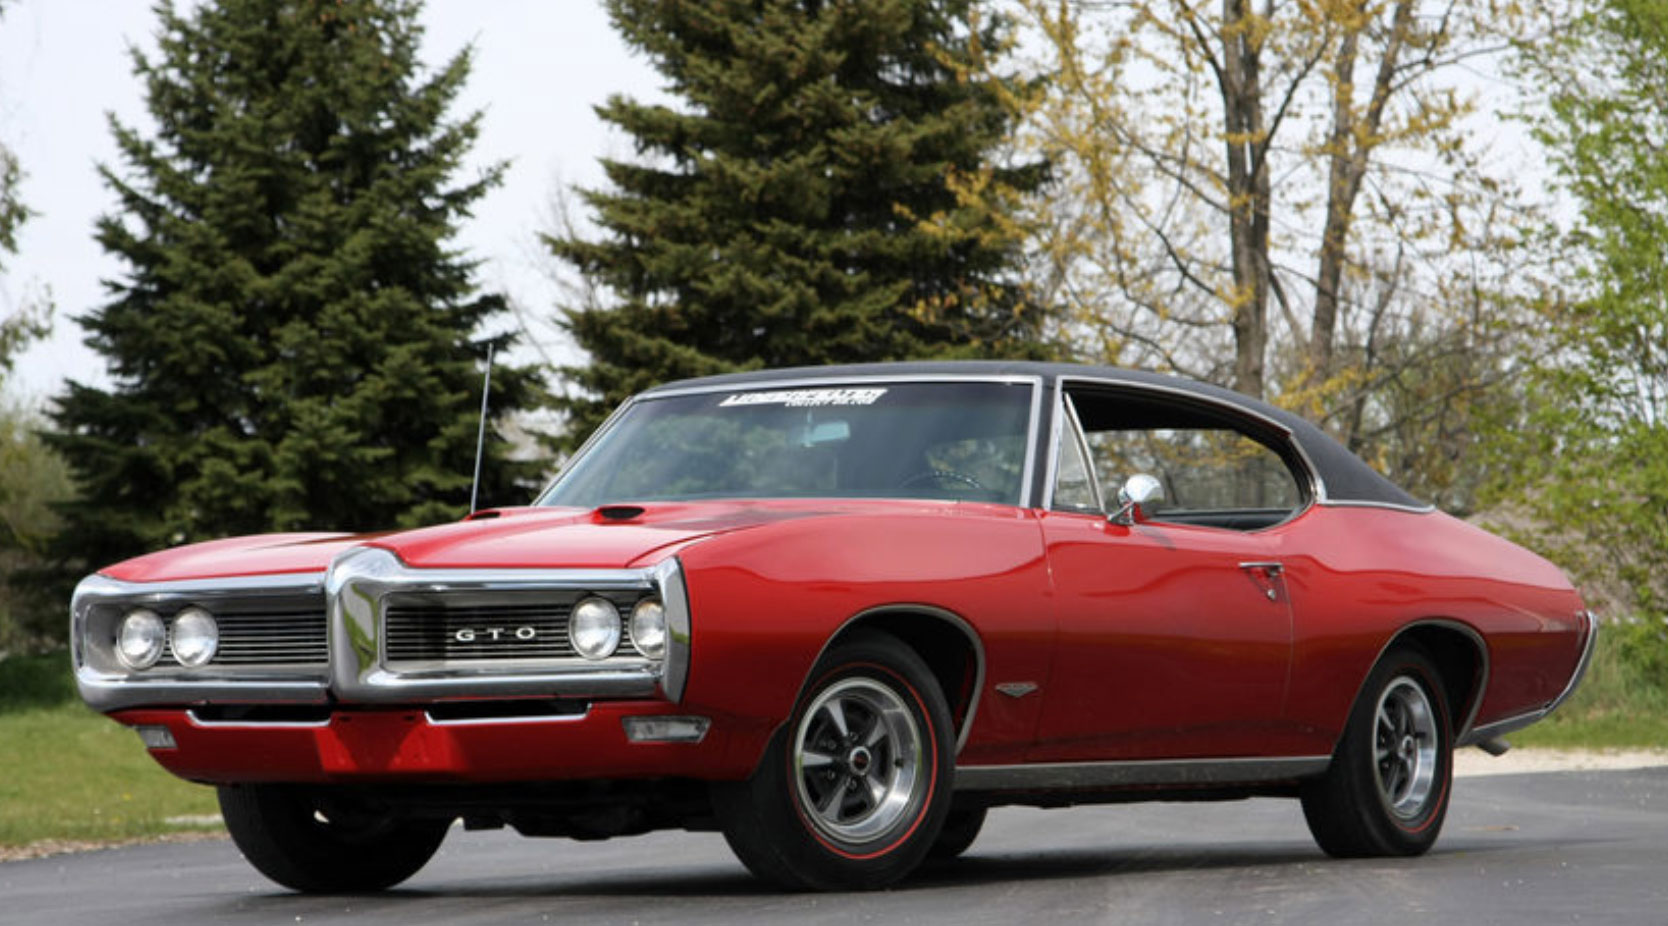 1968 Pontiac GTO with Endura-Delete